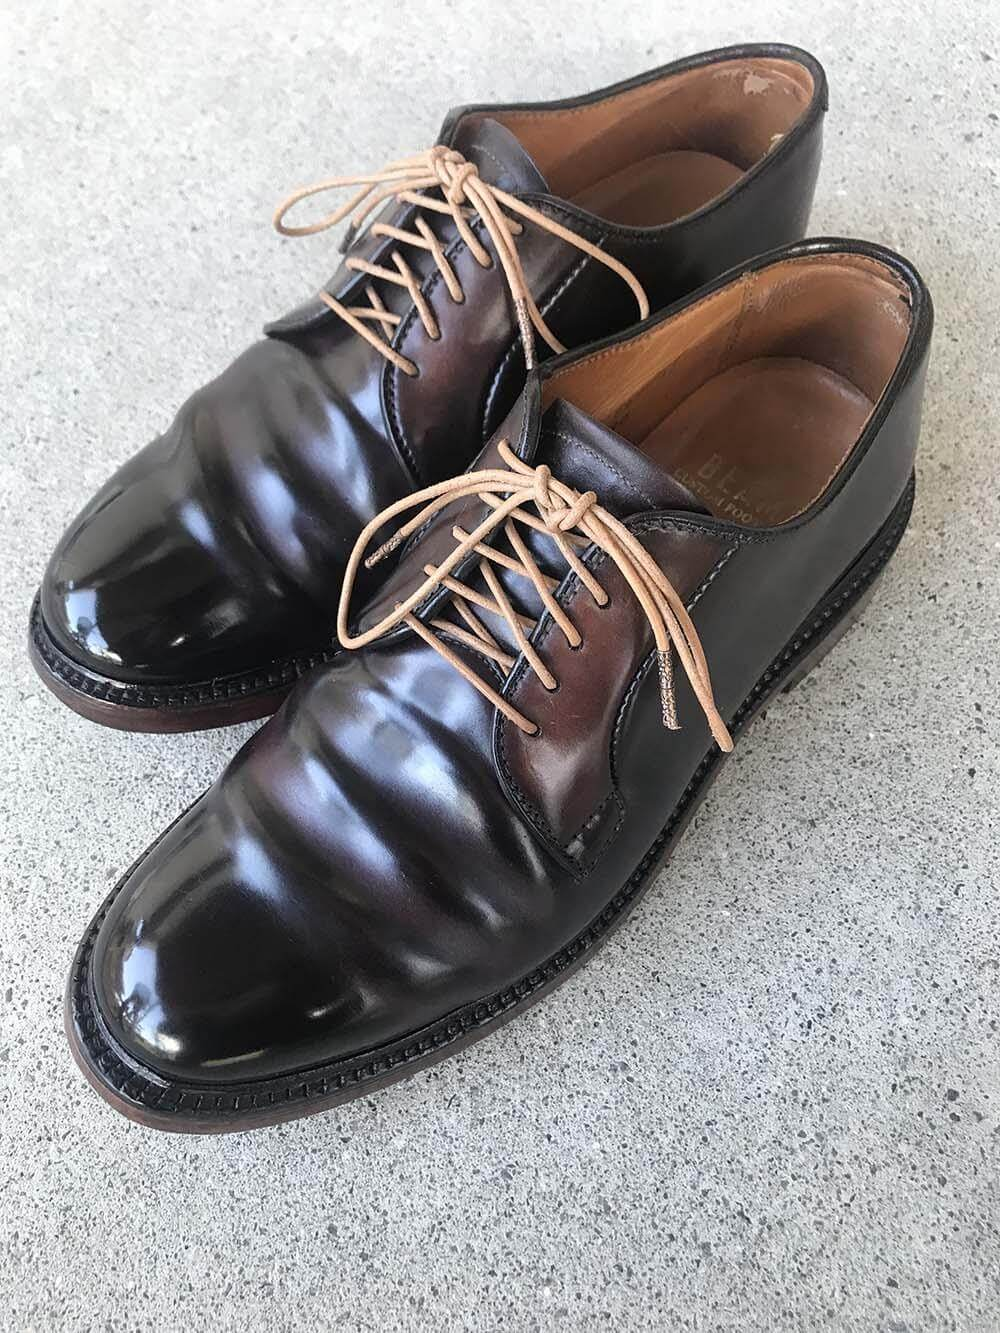 靴バカ.com bootblack collections alden990